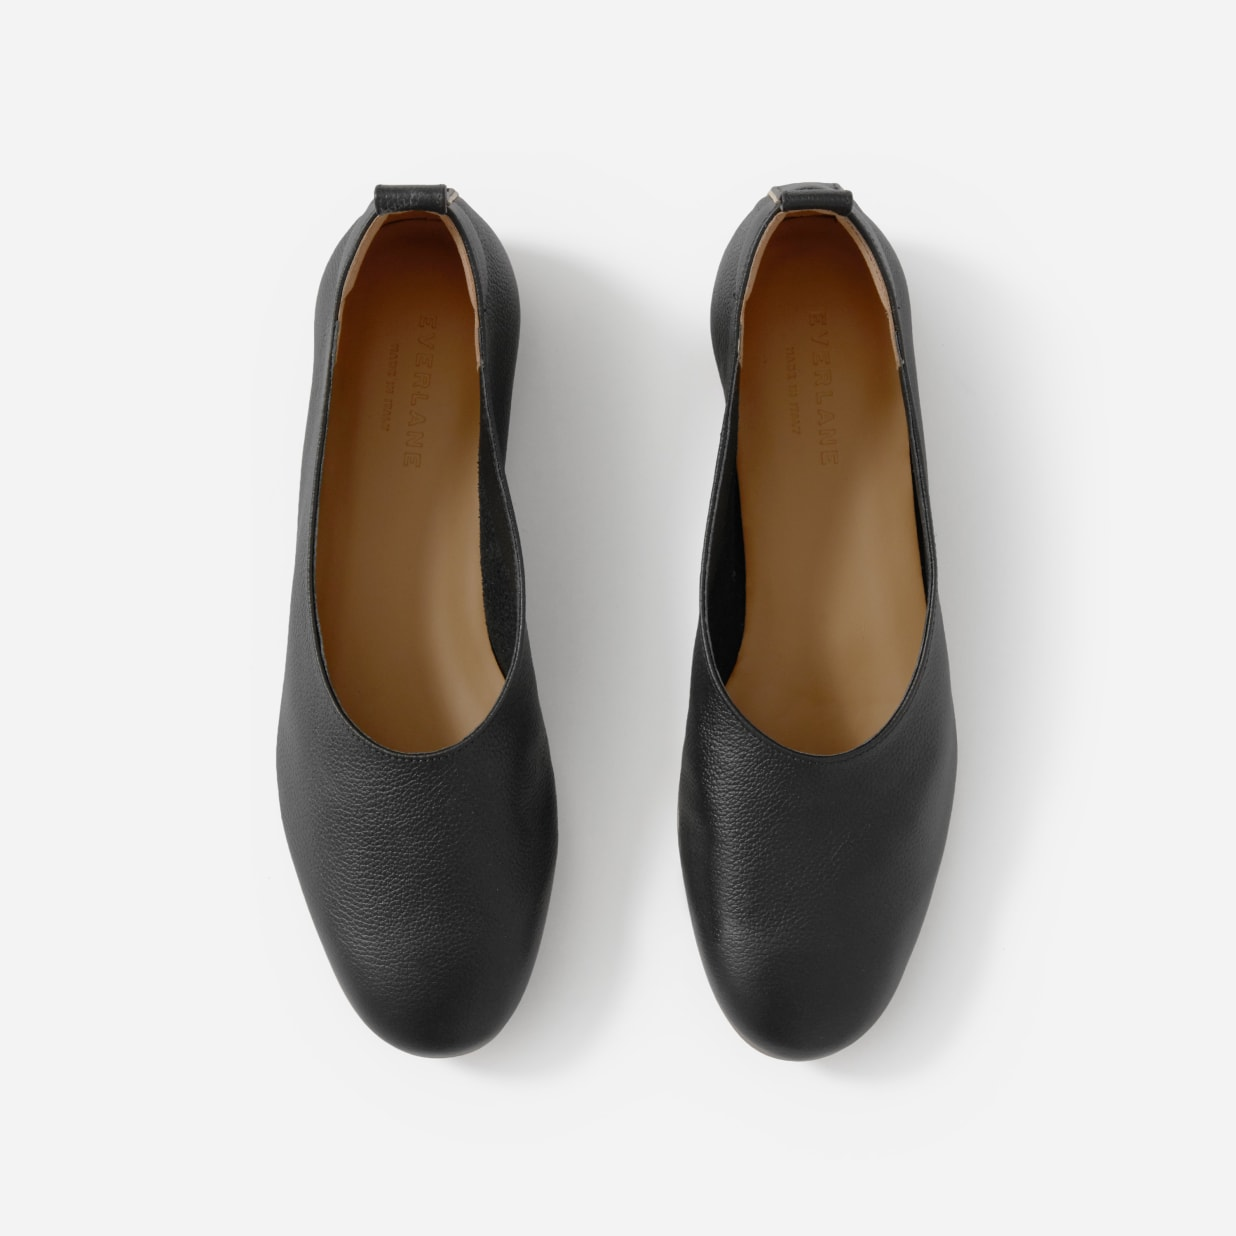 Glove shaped with block heels: ballet pumps have had a make over